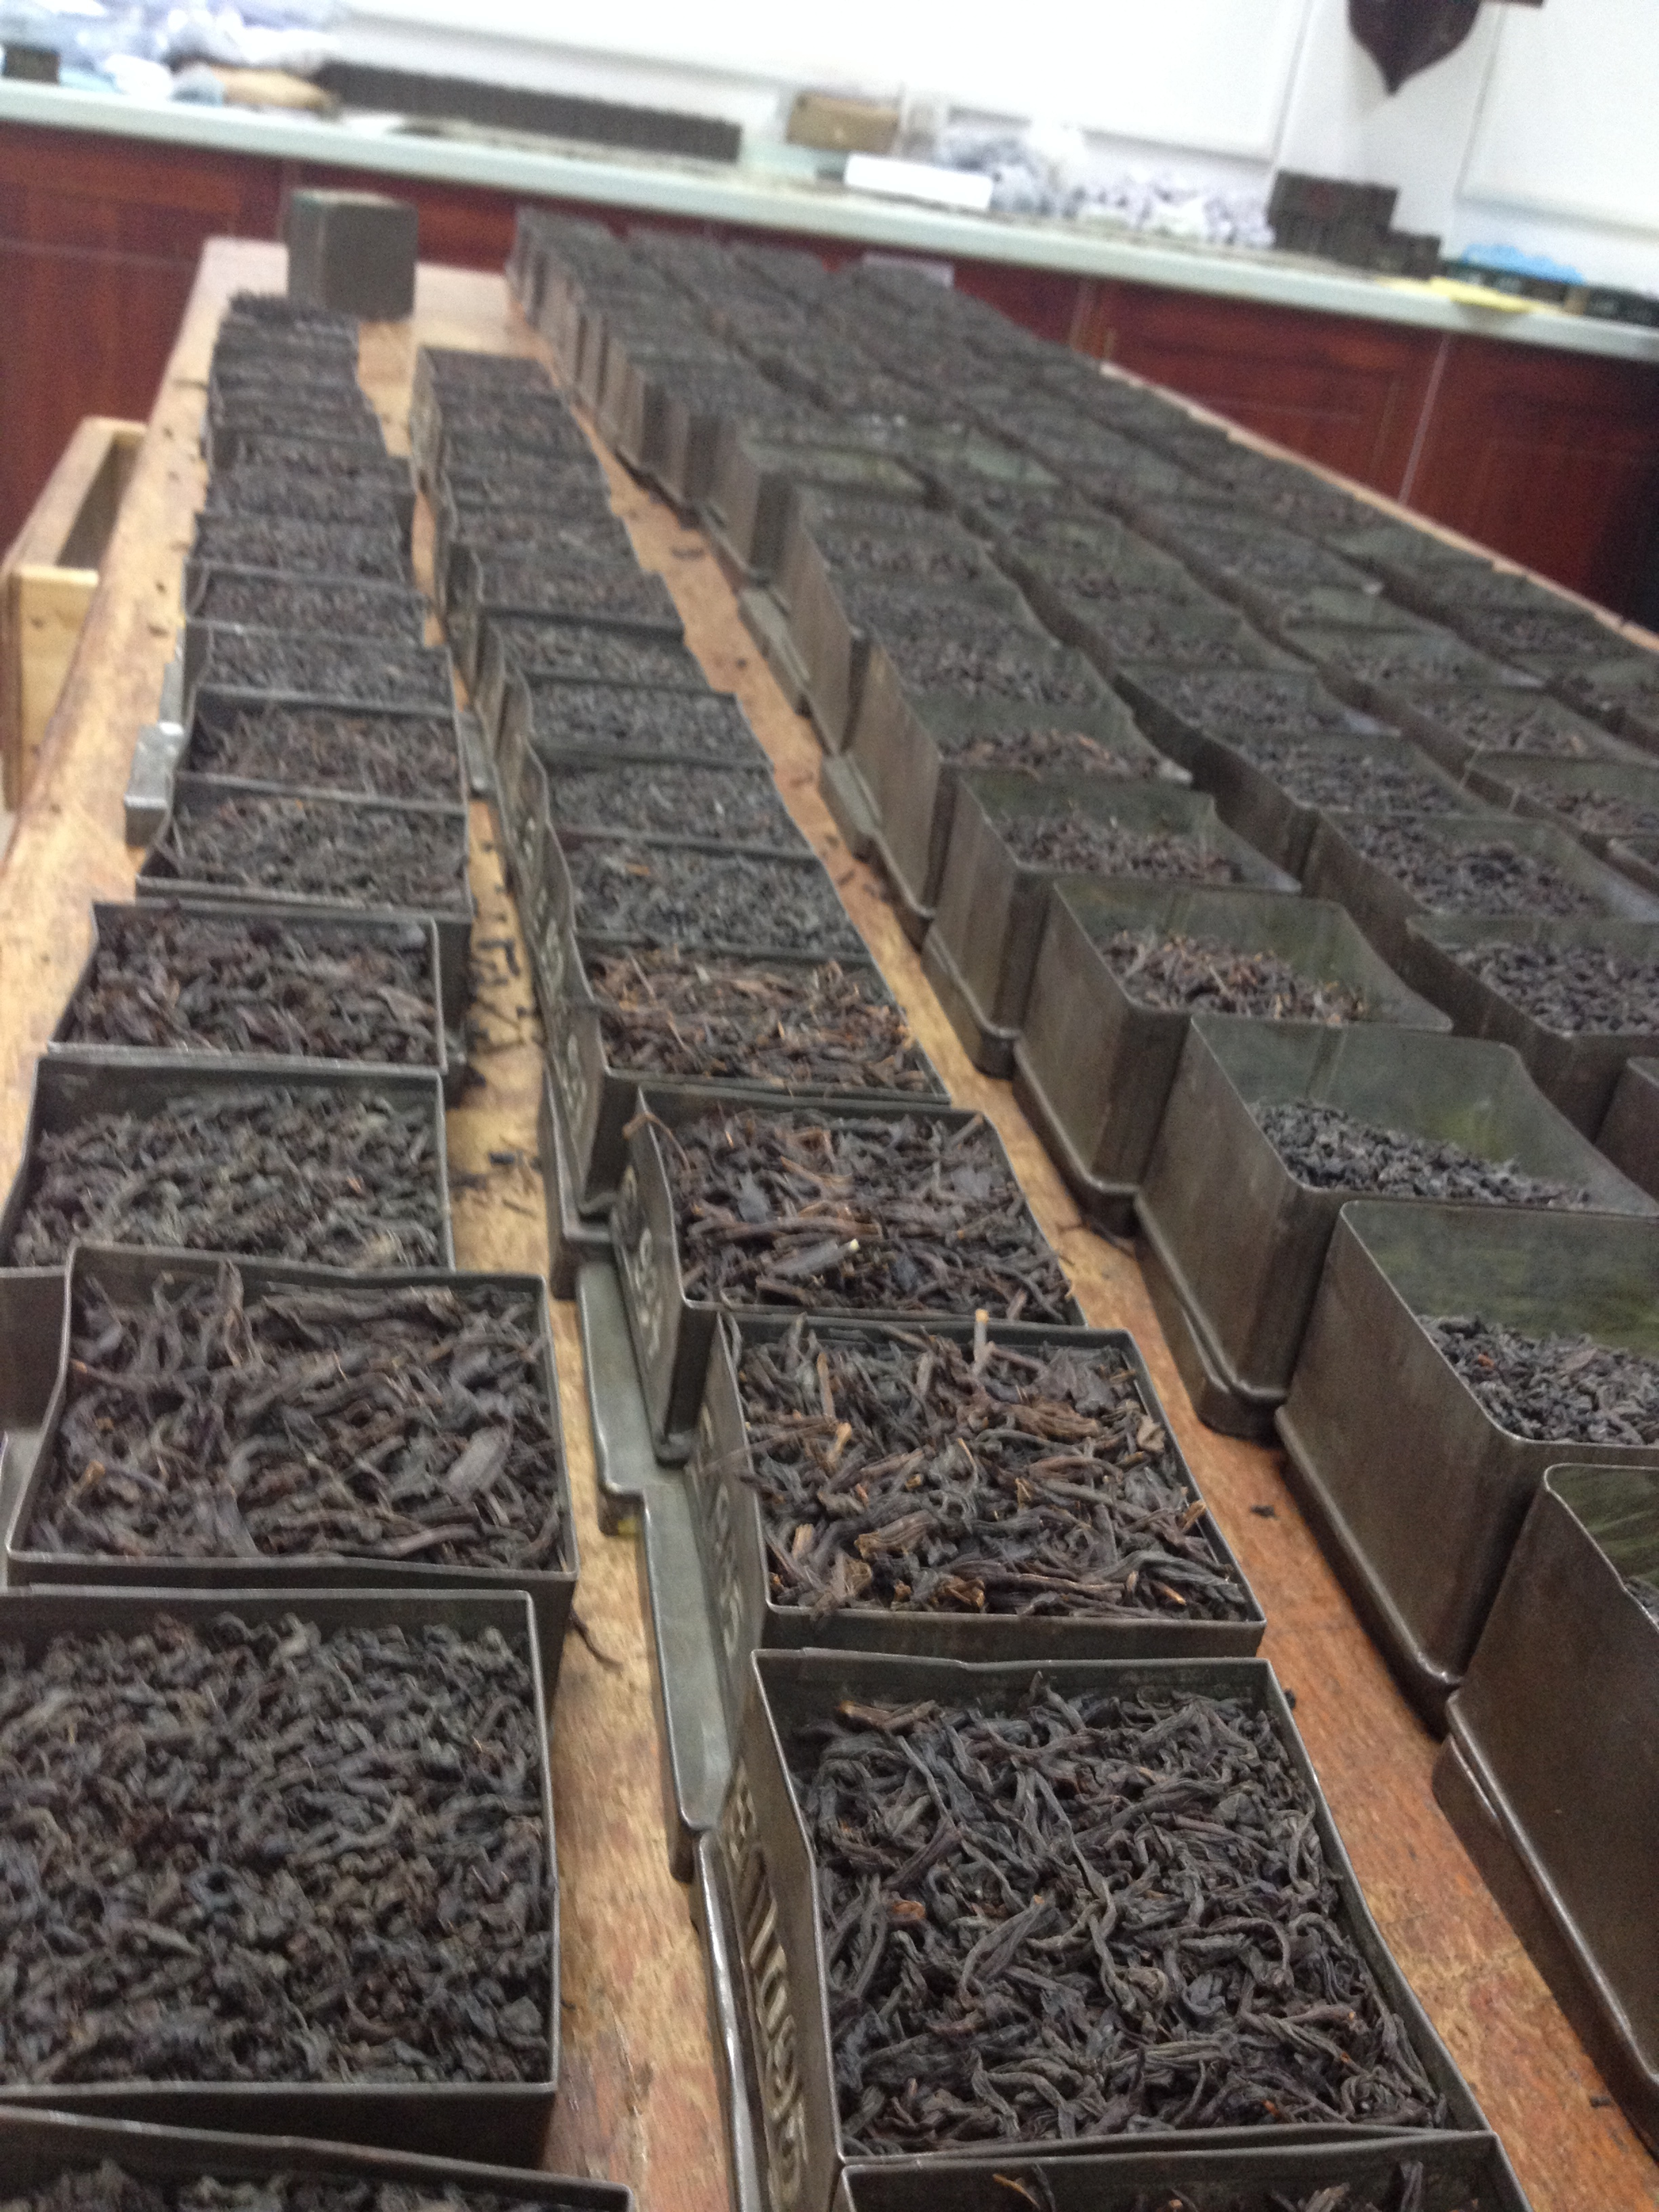 Black Loose Leaf Tea, whole leaf tea, black tea, black wholeleaf tea, black tea estate, black tea R&D, research black tea